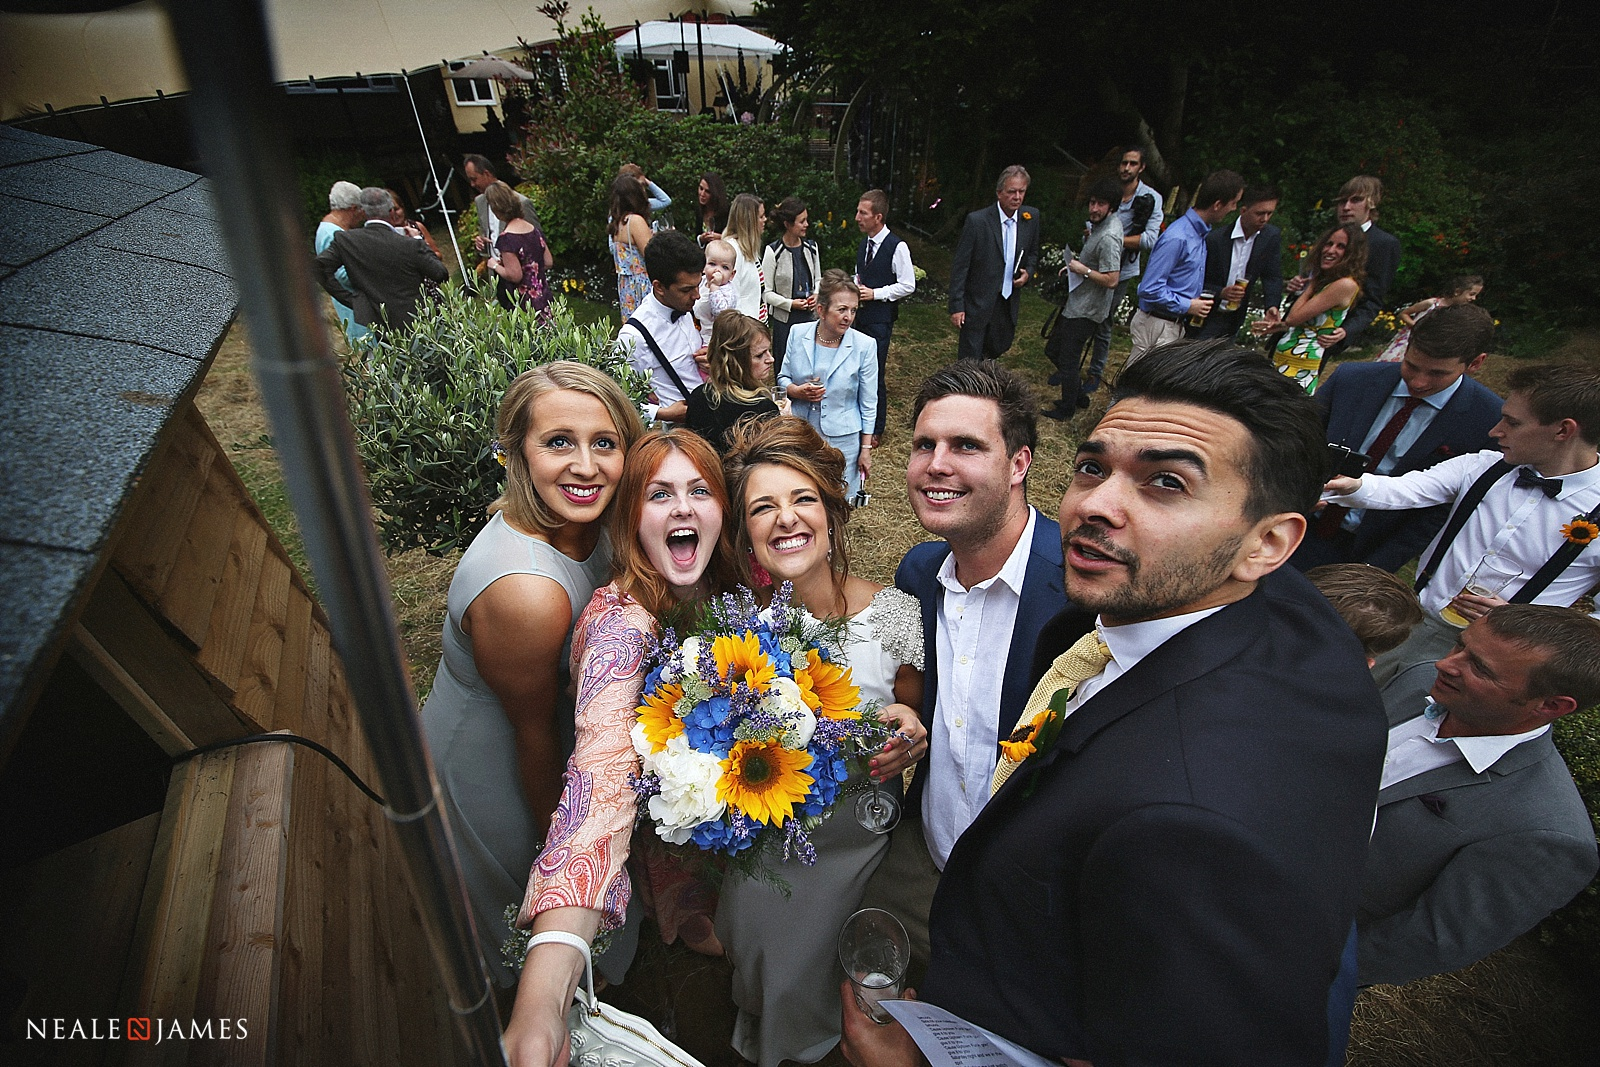 A wedding selfie picture